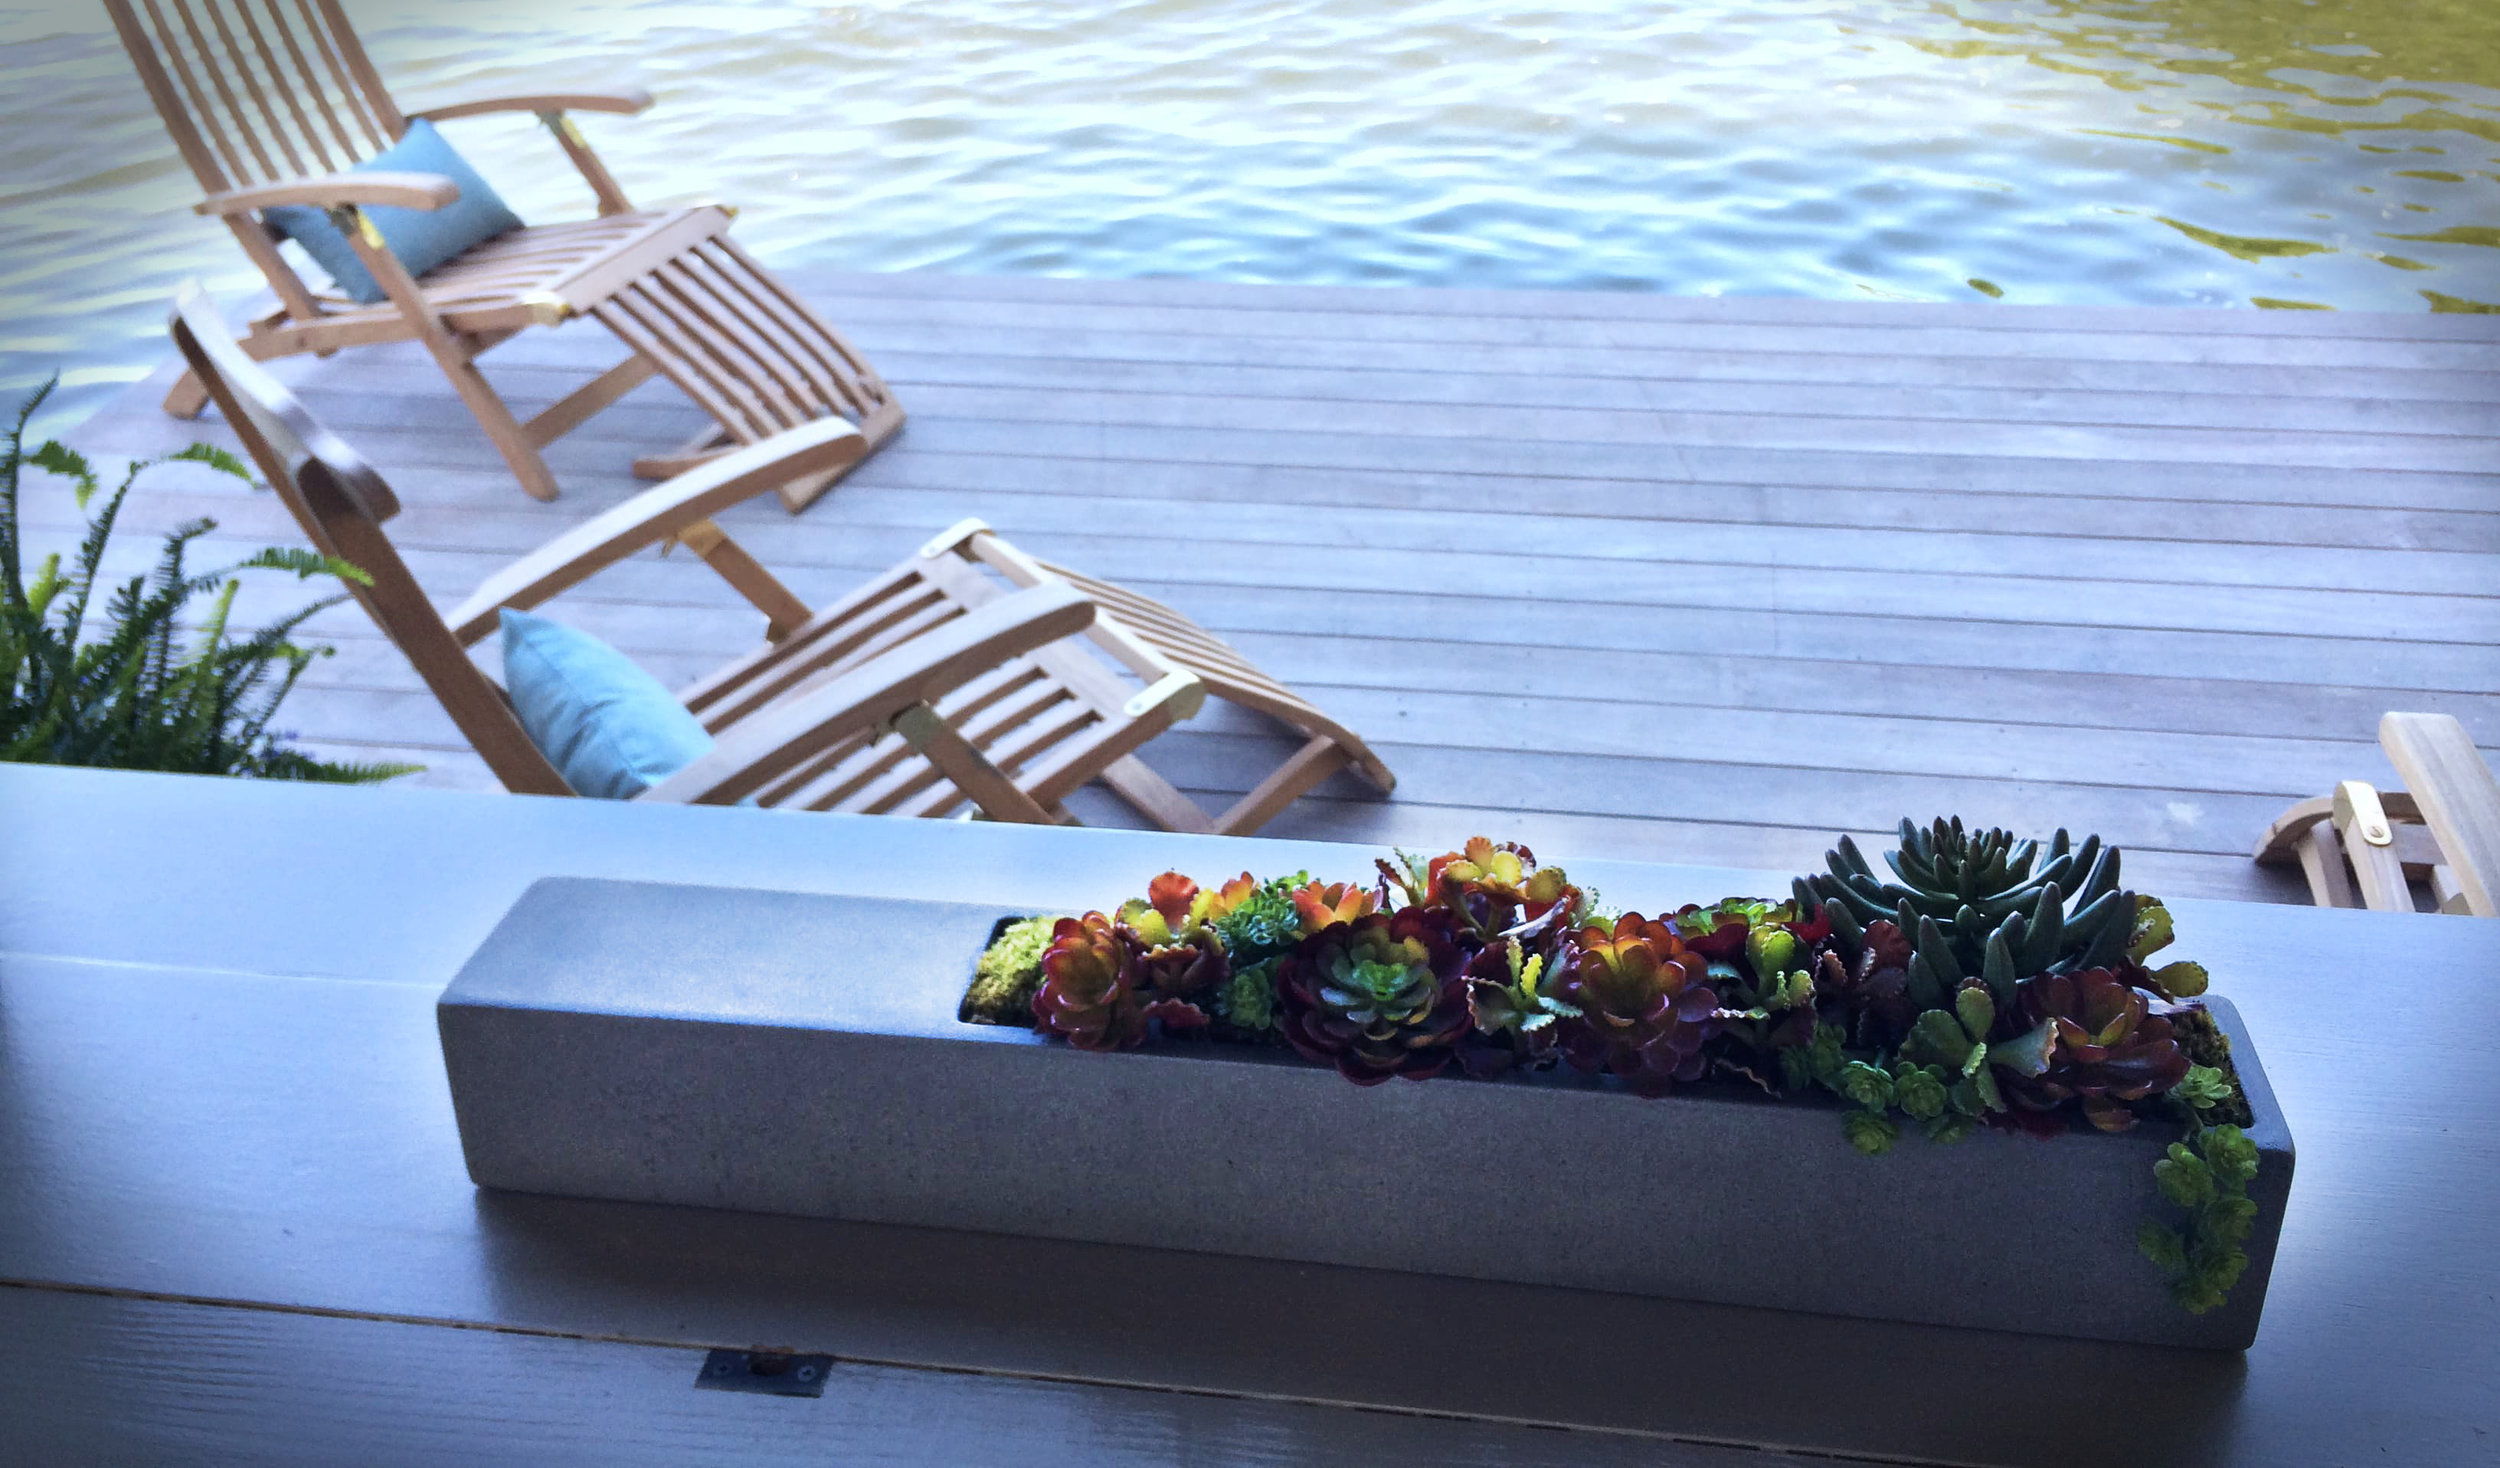 A medium tabletop planter, seen here enjoying time by the lake. This planter comes in multiple sizes and can be found in our store here:   tabletop planters  .